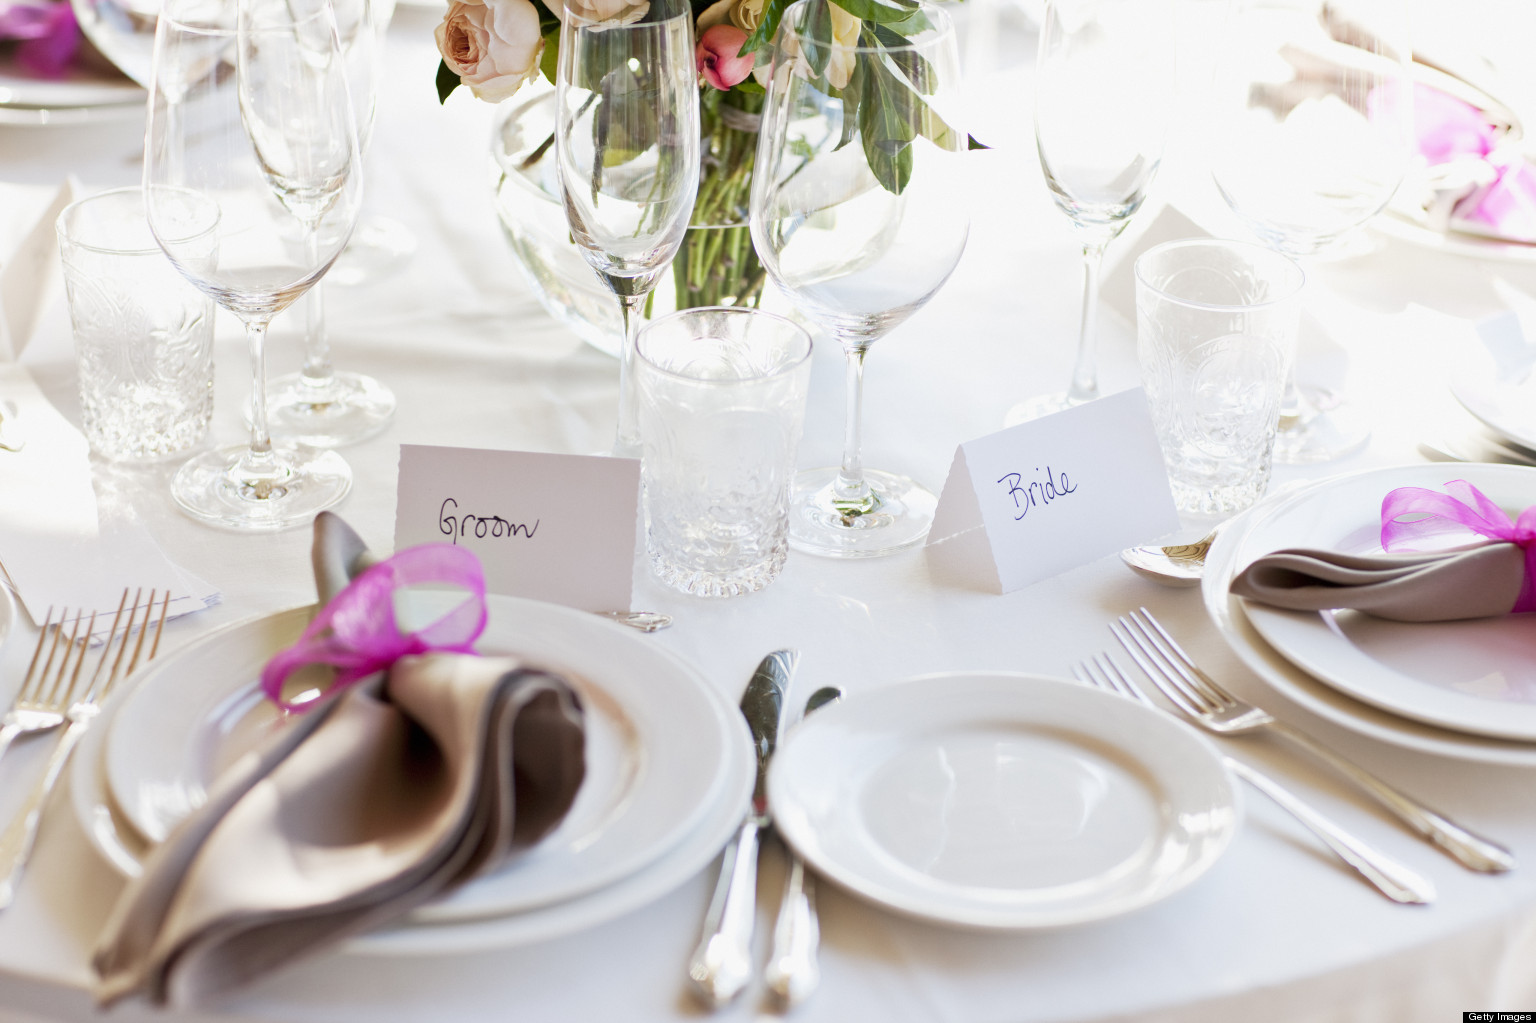 How Catering Works at a Destination Wedding: A Bridal Etiquette ...